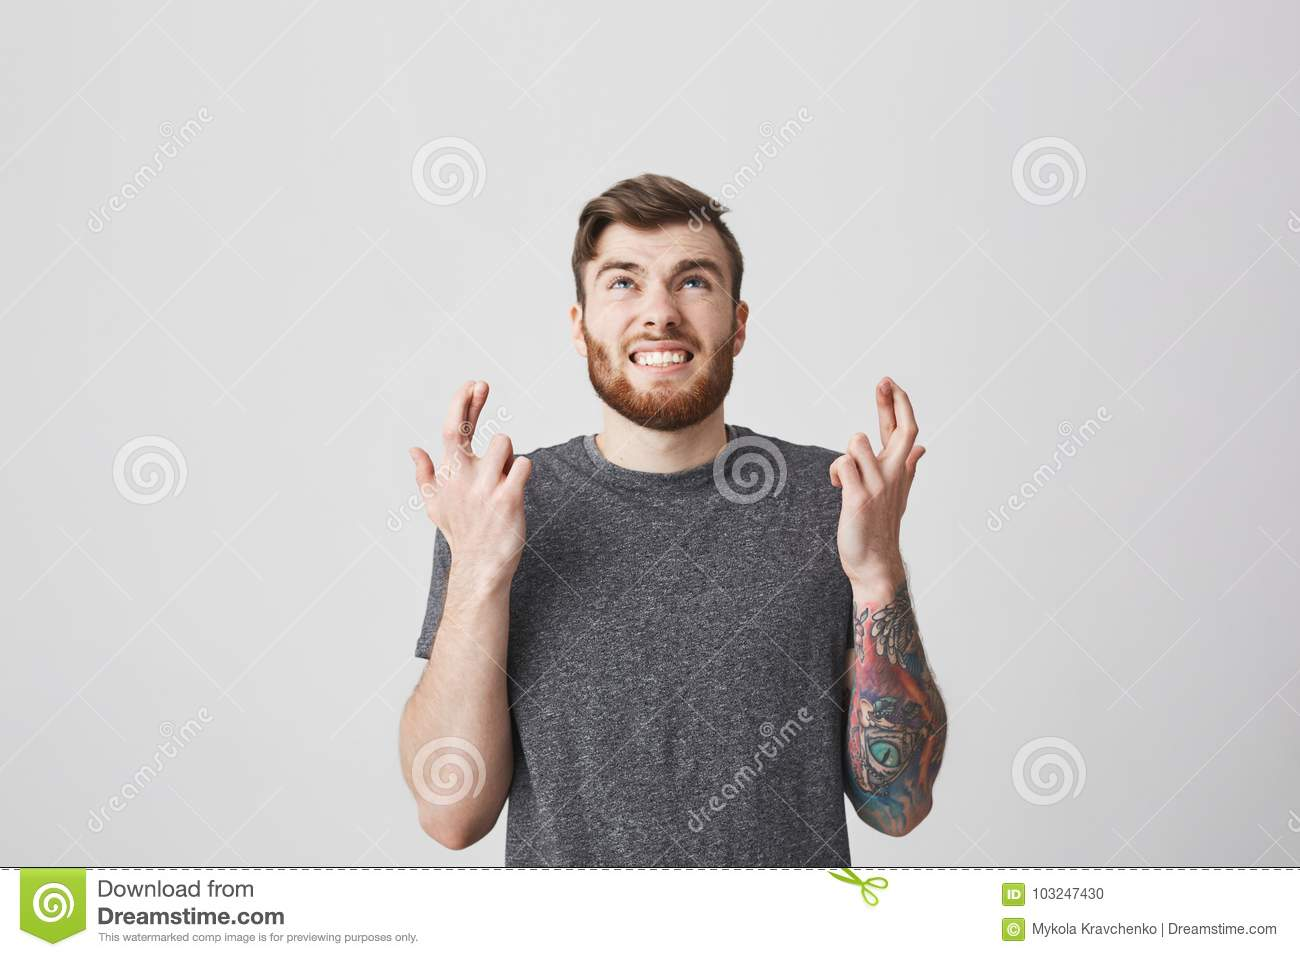 Body Language Student With Angry Expression Hoping To